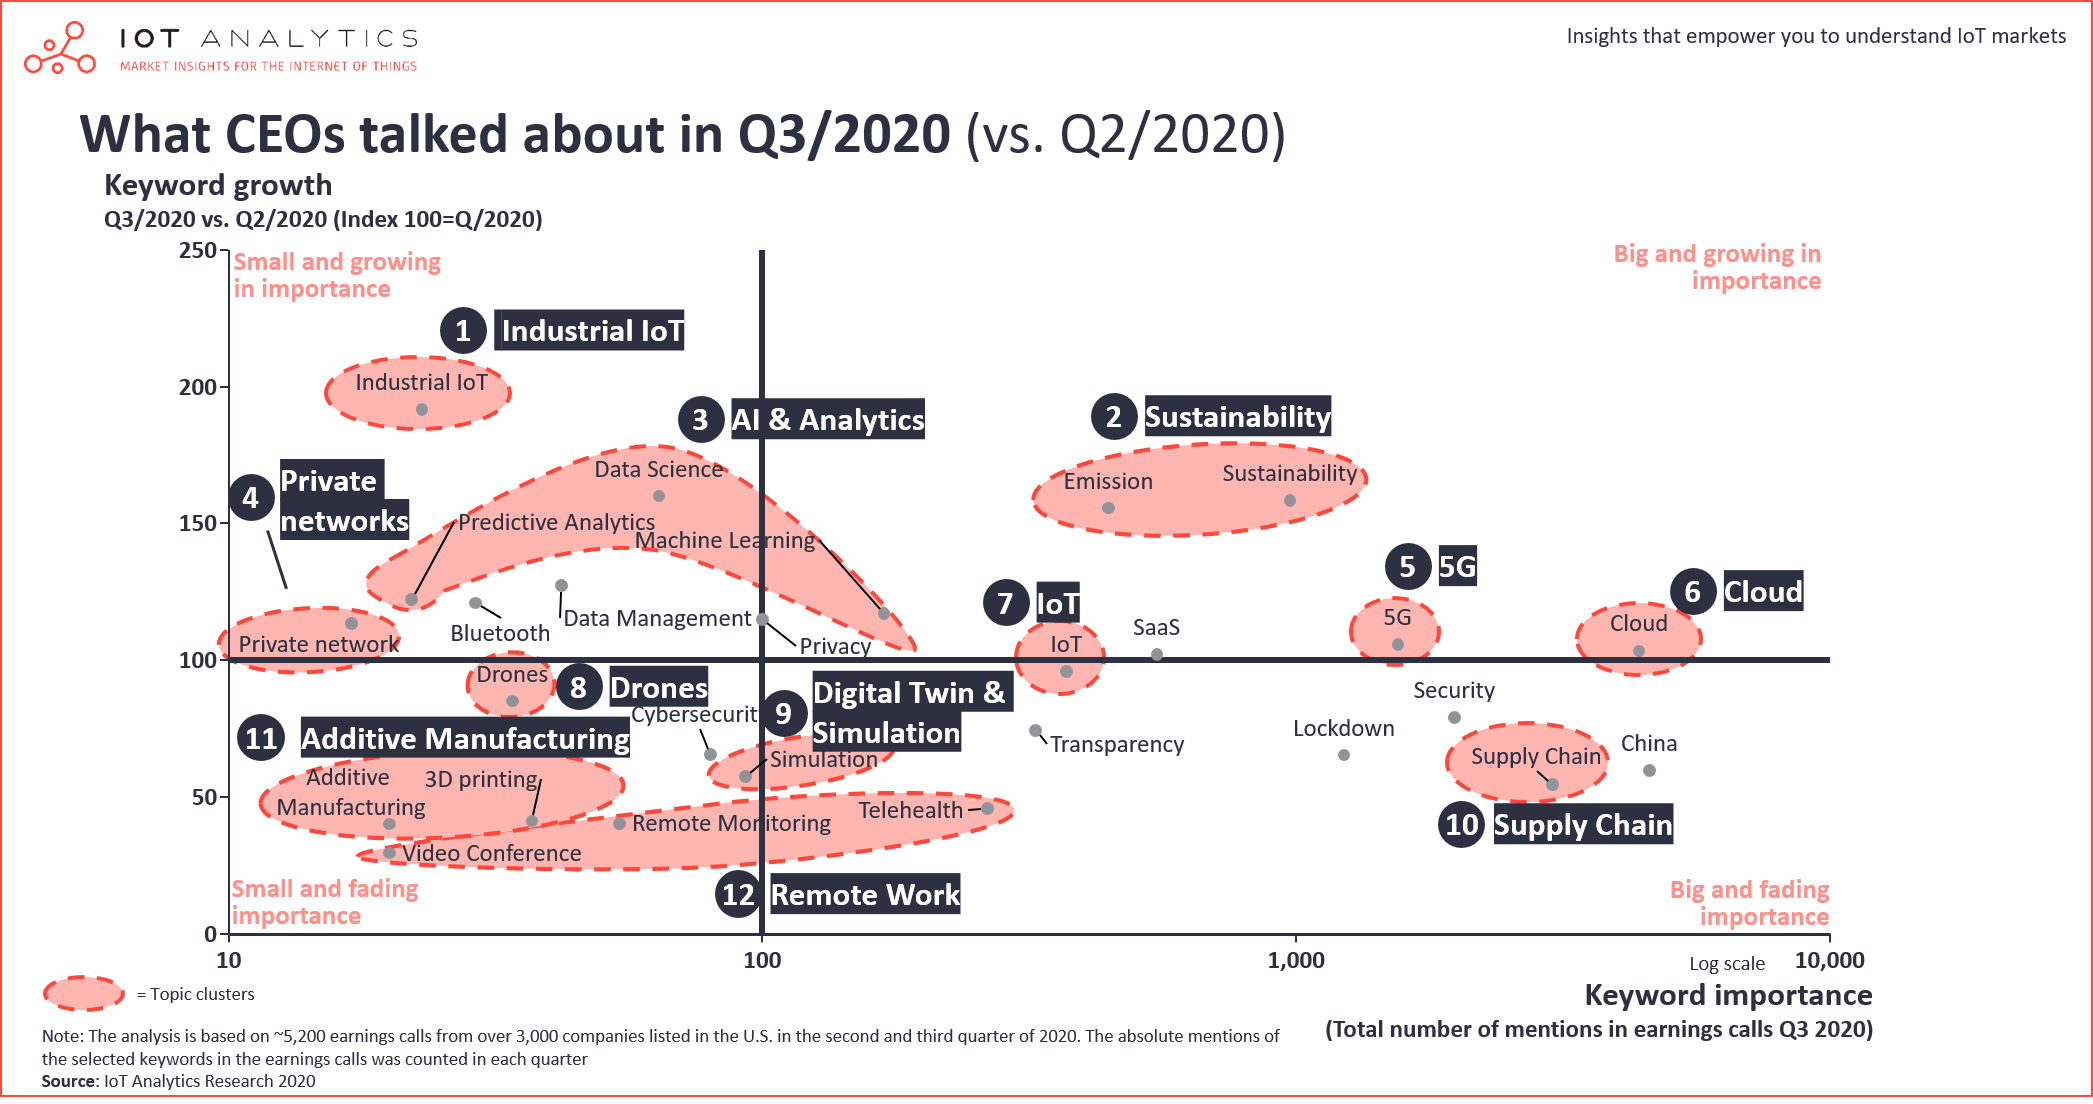 What-CEOs-talked-about-in-Q3-2020-3-min